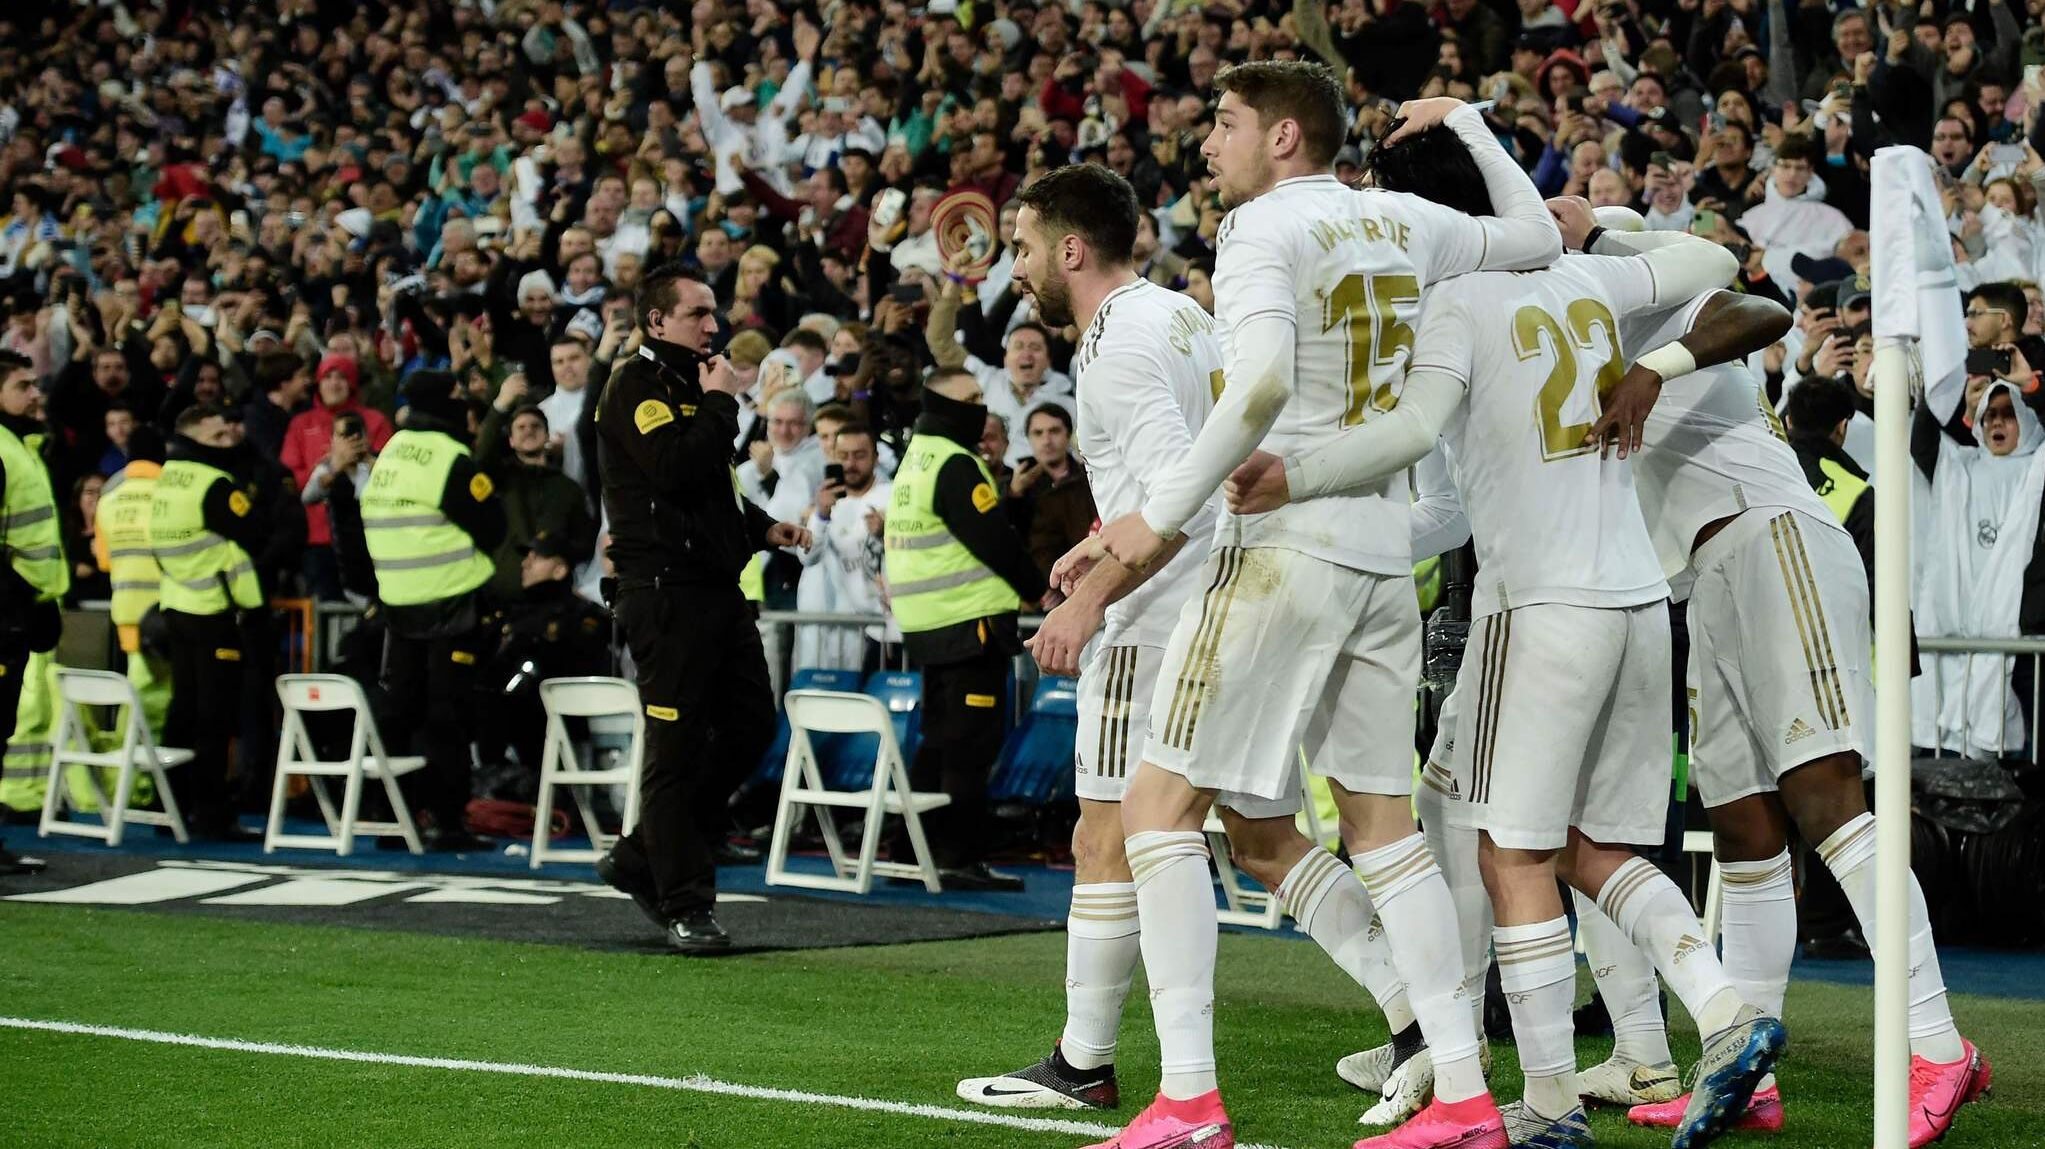 Ranked: Which LaLiga clubs had the highest attendances in 2019/20? - Bóng Đá